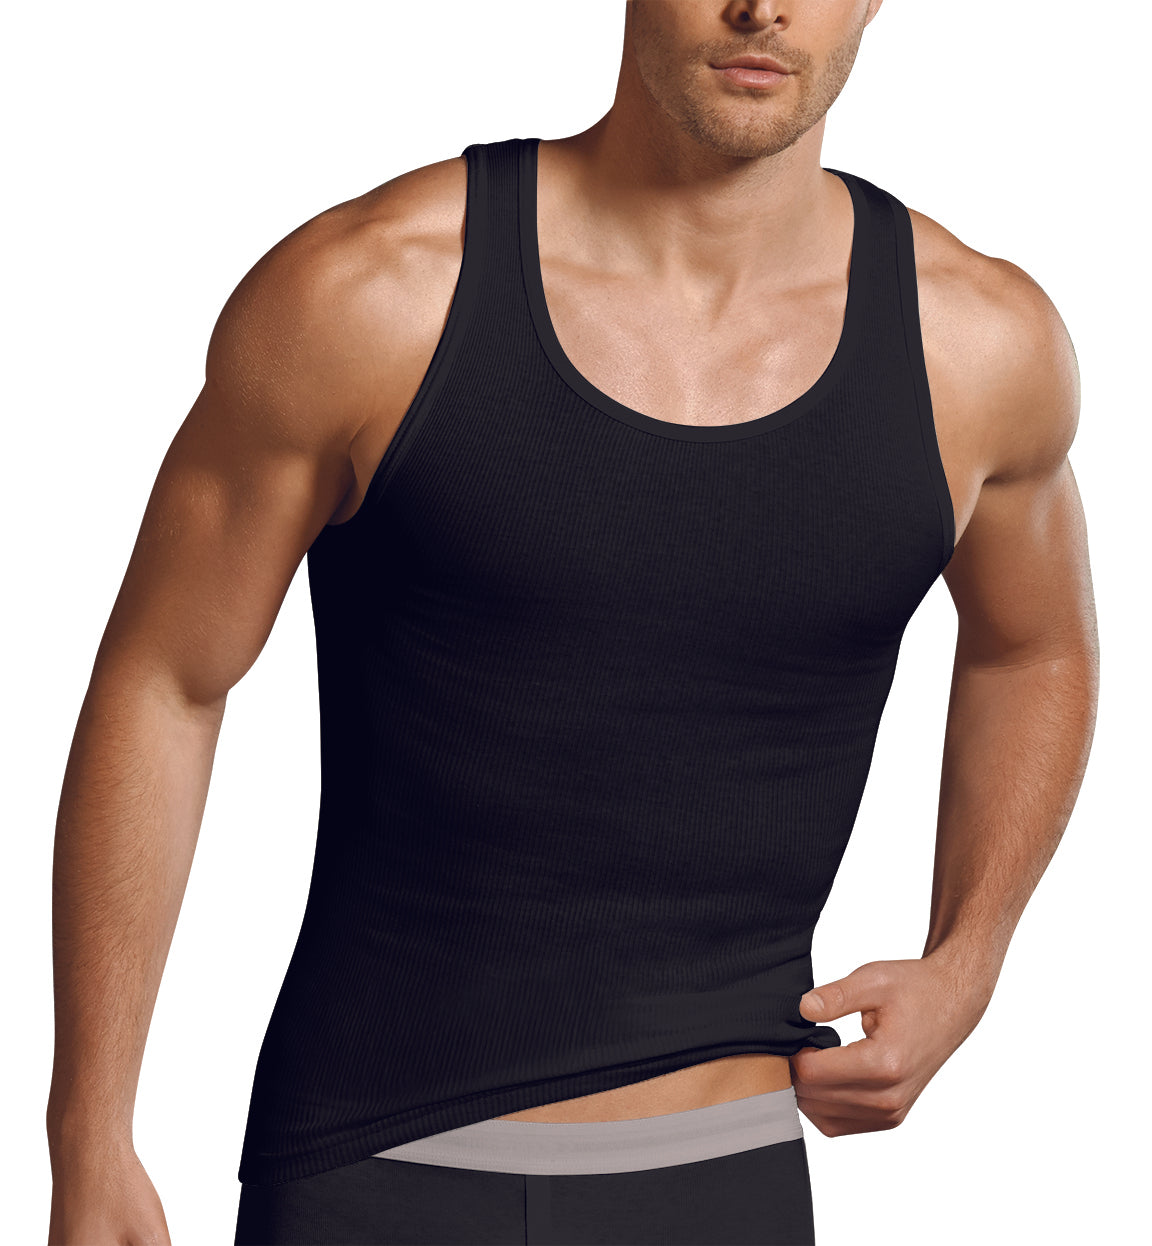 3888409e98ea6 Jockey - 1 pack Men s Big   Tall Cotton Interlock Tank Top - Inner Statement